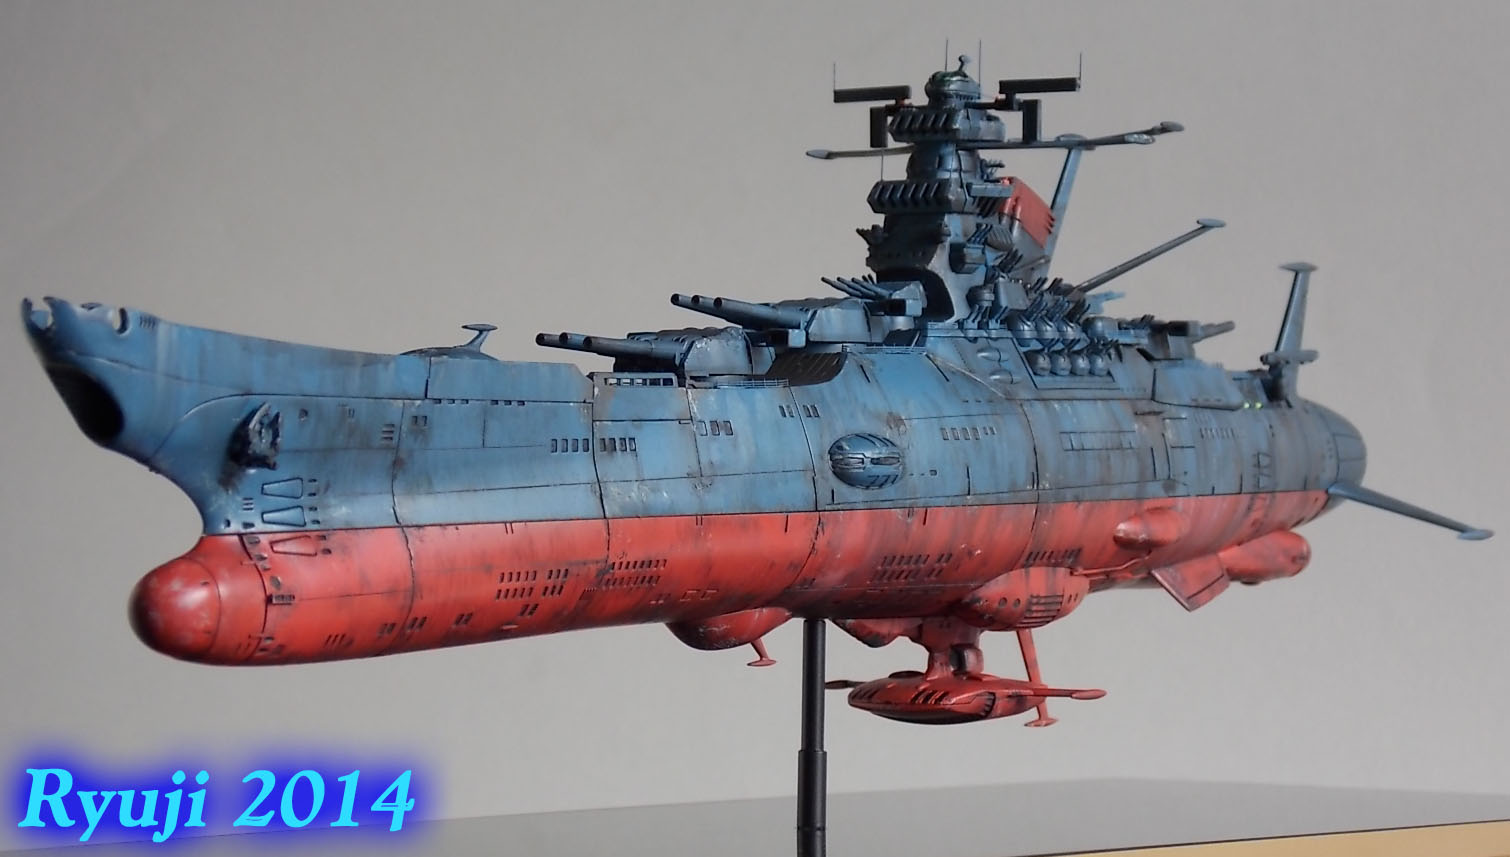 Yamato 1-1000 01 by celsoryuji on DeviantArt